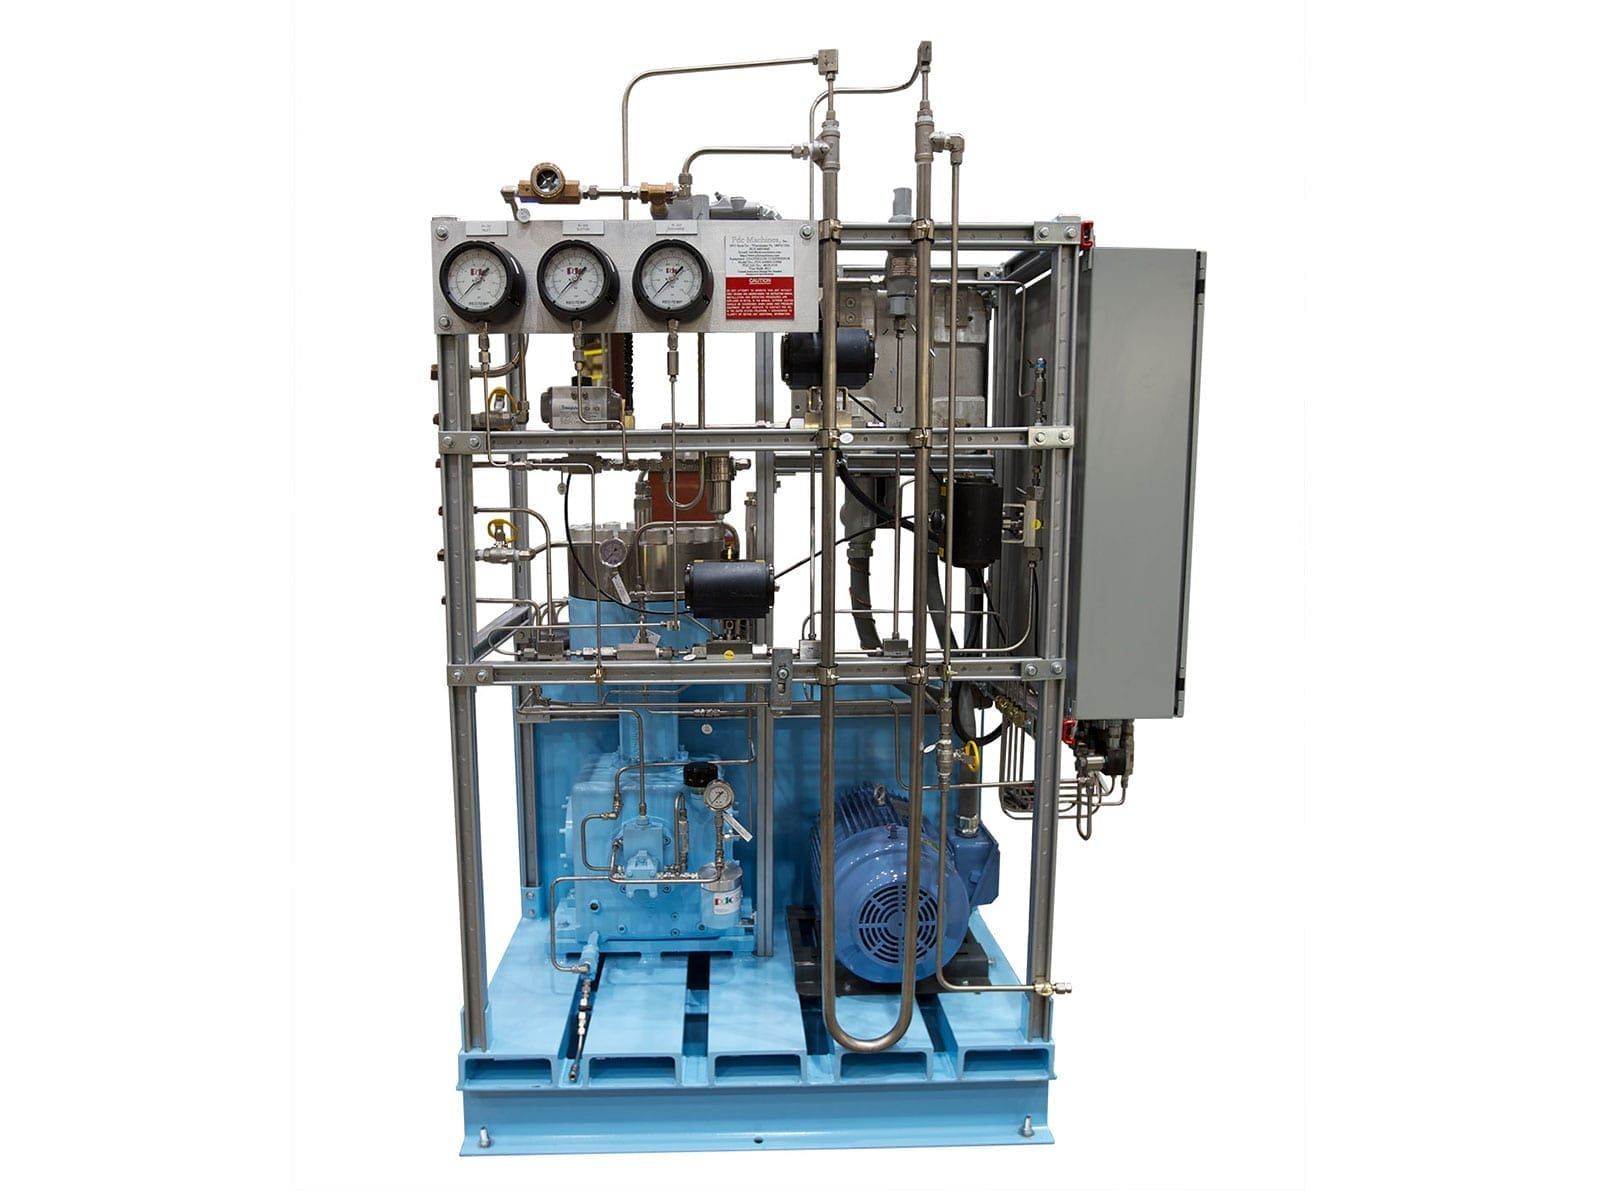 Single stage diaphragm compressor for specialty gas mixture